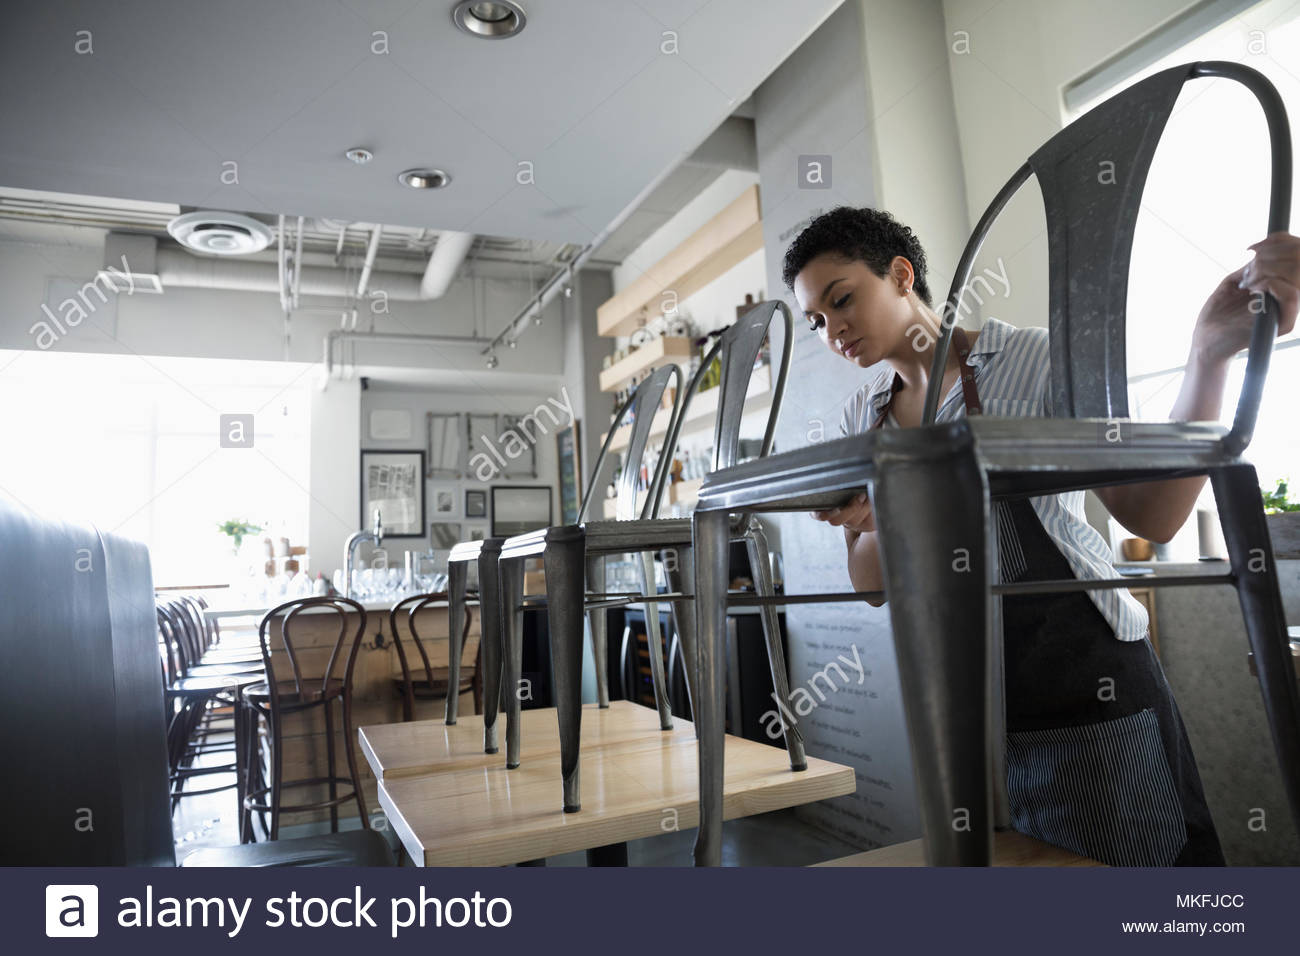 Young woman small business owner stacking chairs on tables in cafe - Stock Image